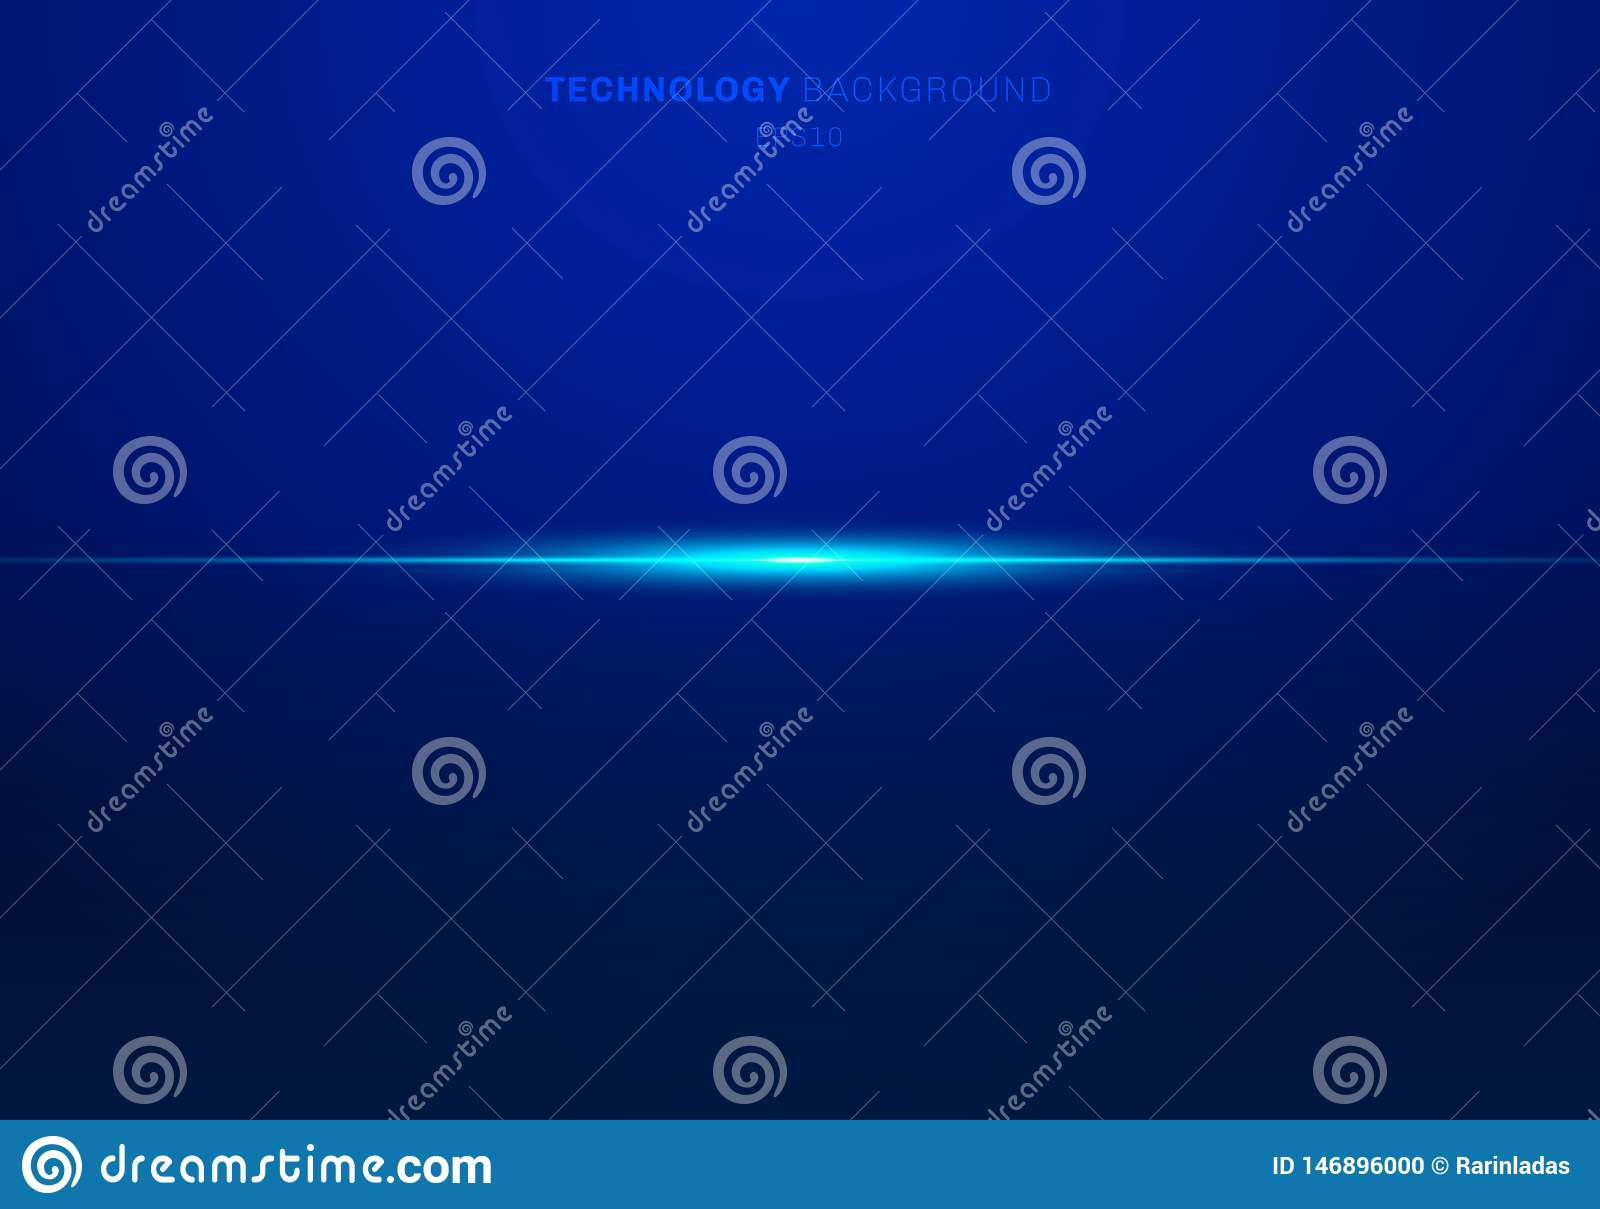 Abstract elements blue light laser lines horizontal on dark background. Technology style